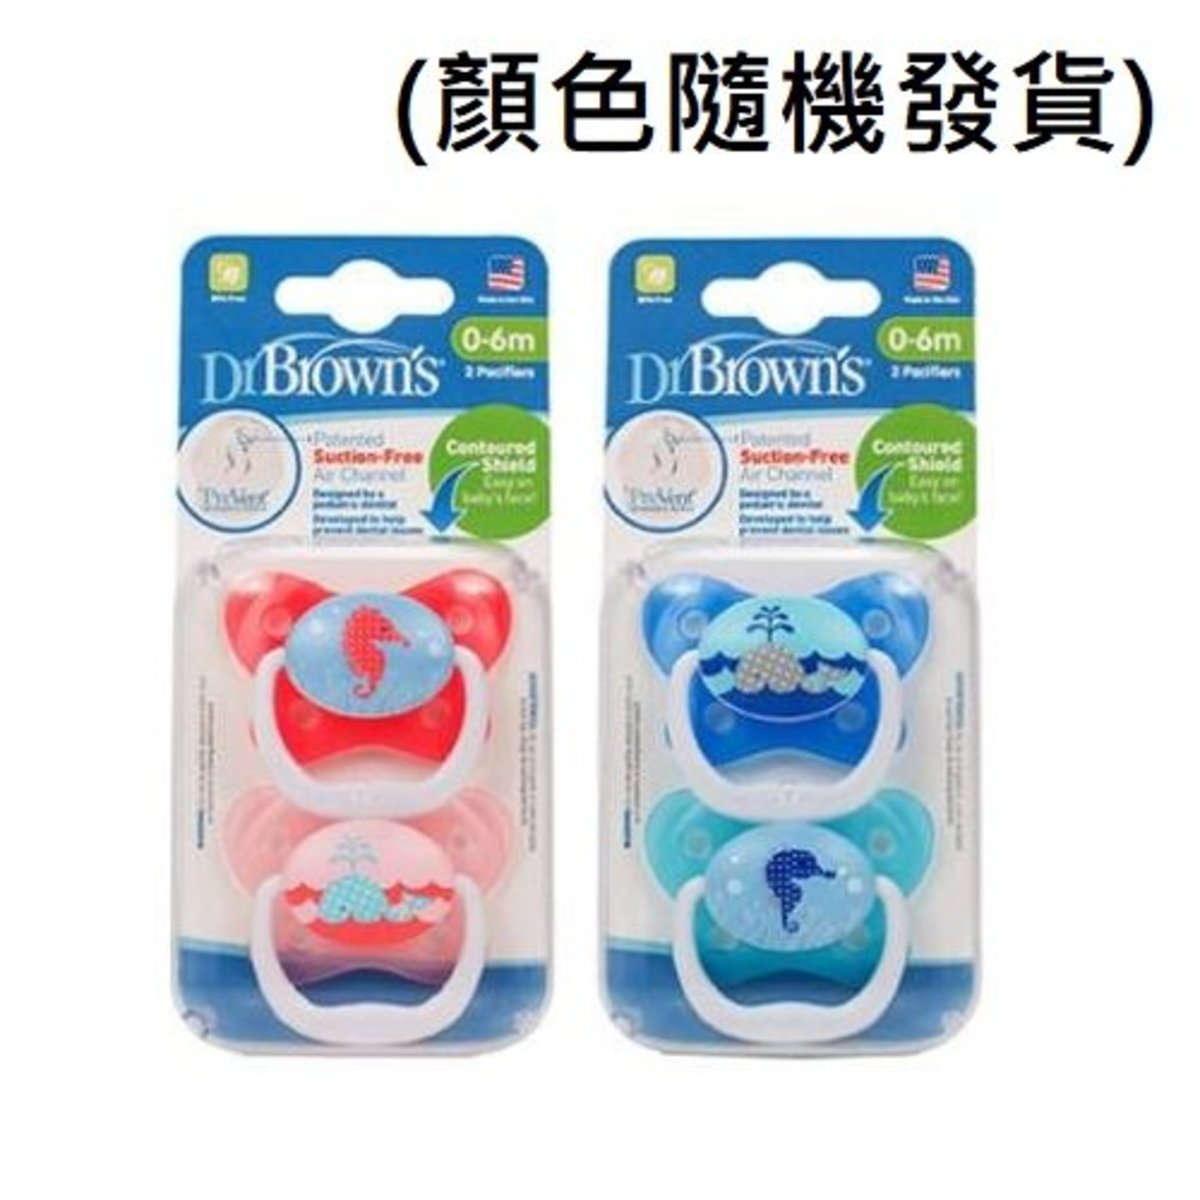 PreVent Orthodontic Butterfly Pacifier, 0-6 Months - 2 Counts (Color Random Delivery) (72239300664) (parallel goods)